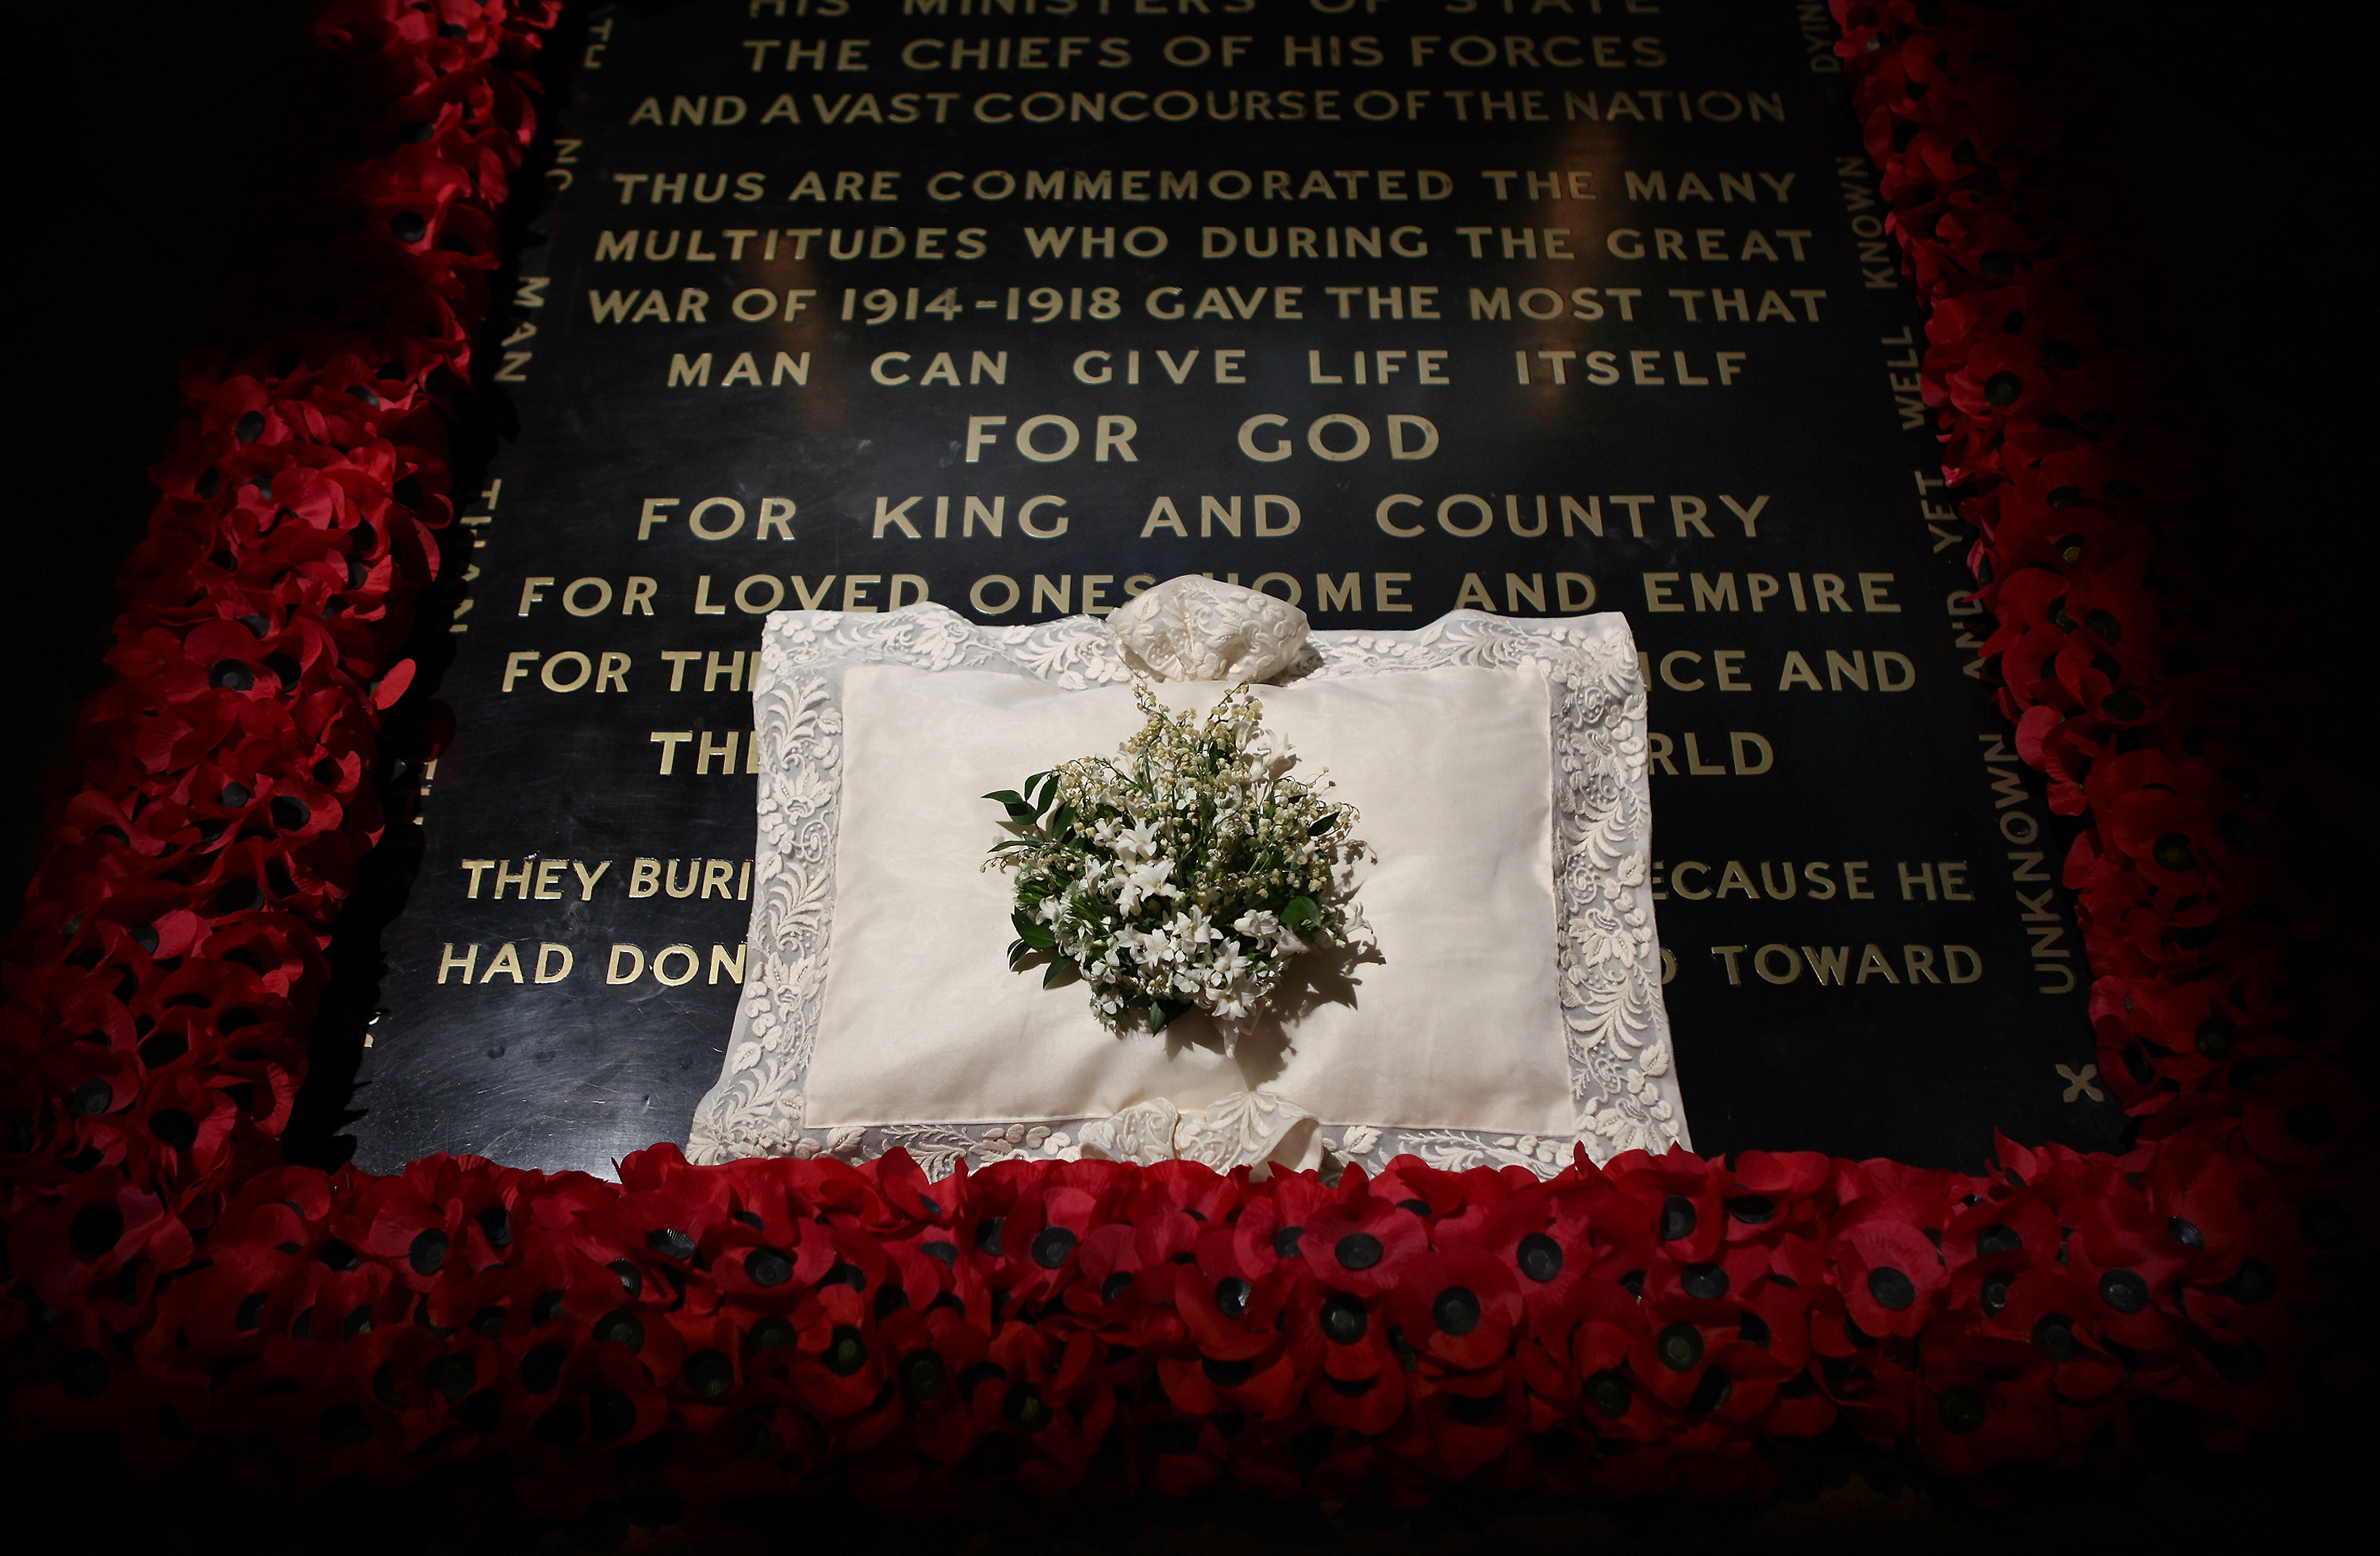 The wedding bouquet of Catherine, Duchess of Cambridge lies on the grave of the unknown warrior in Westminster Abbey on April 30, 2011 in London, England.